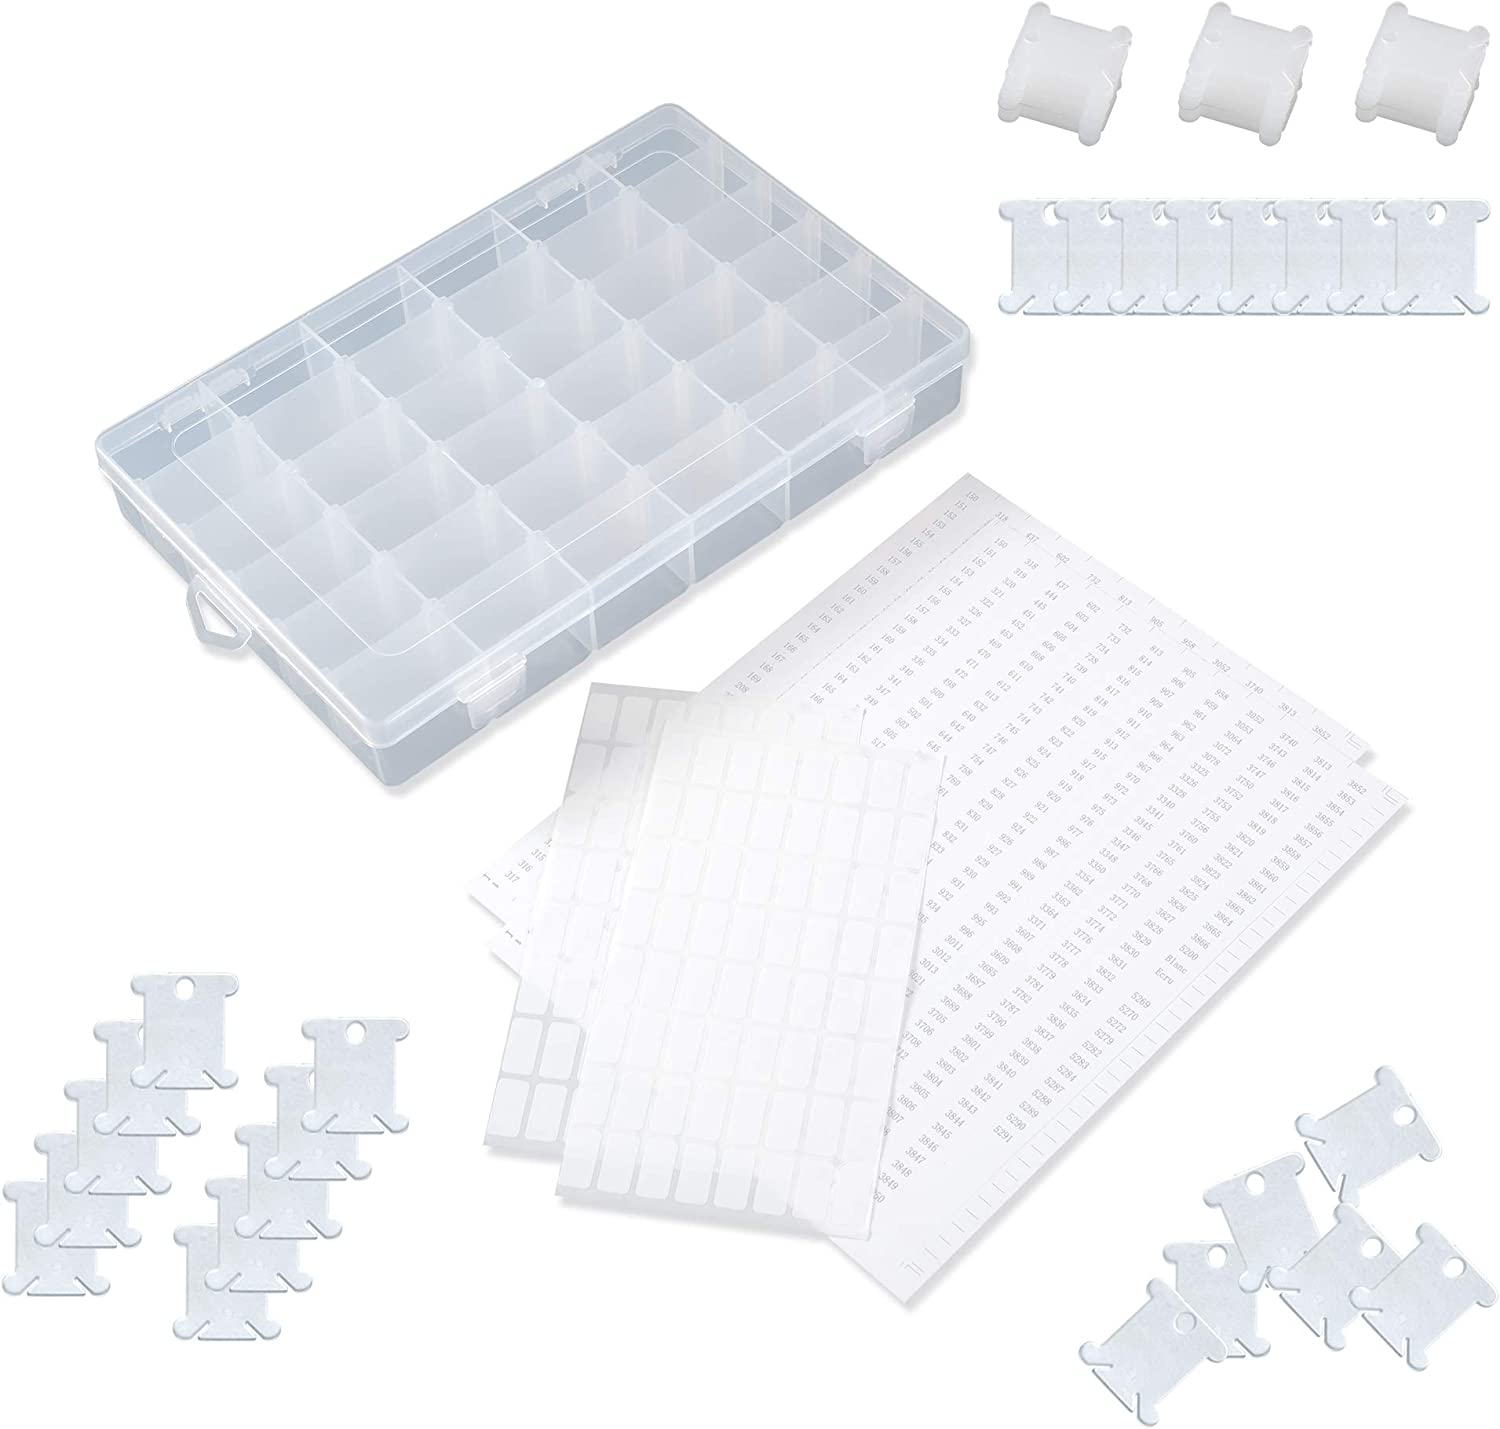 Embroidery Floss Organizer Box with 36 Adjustable compartments Includes 100 Plastic Floss bobbins and 100 Sticker